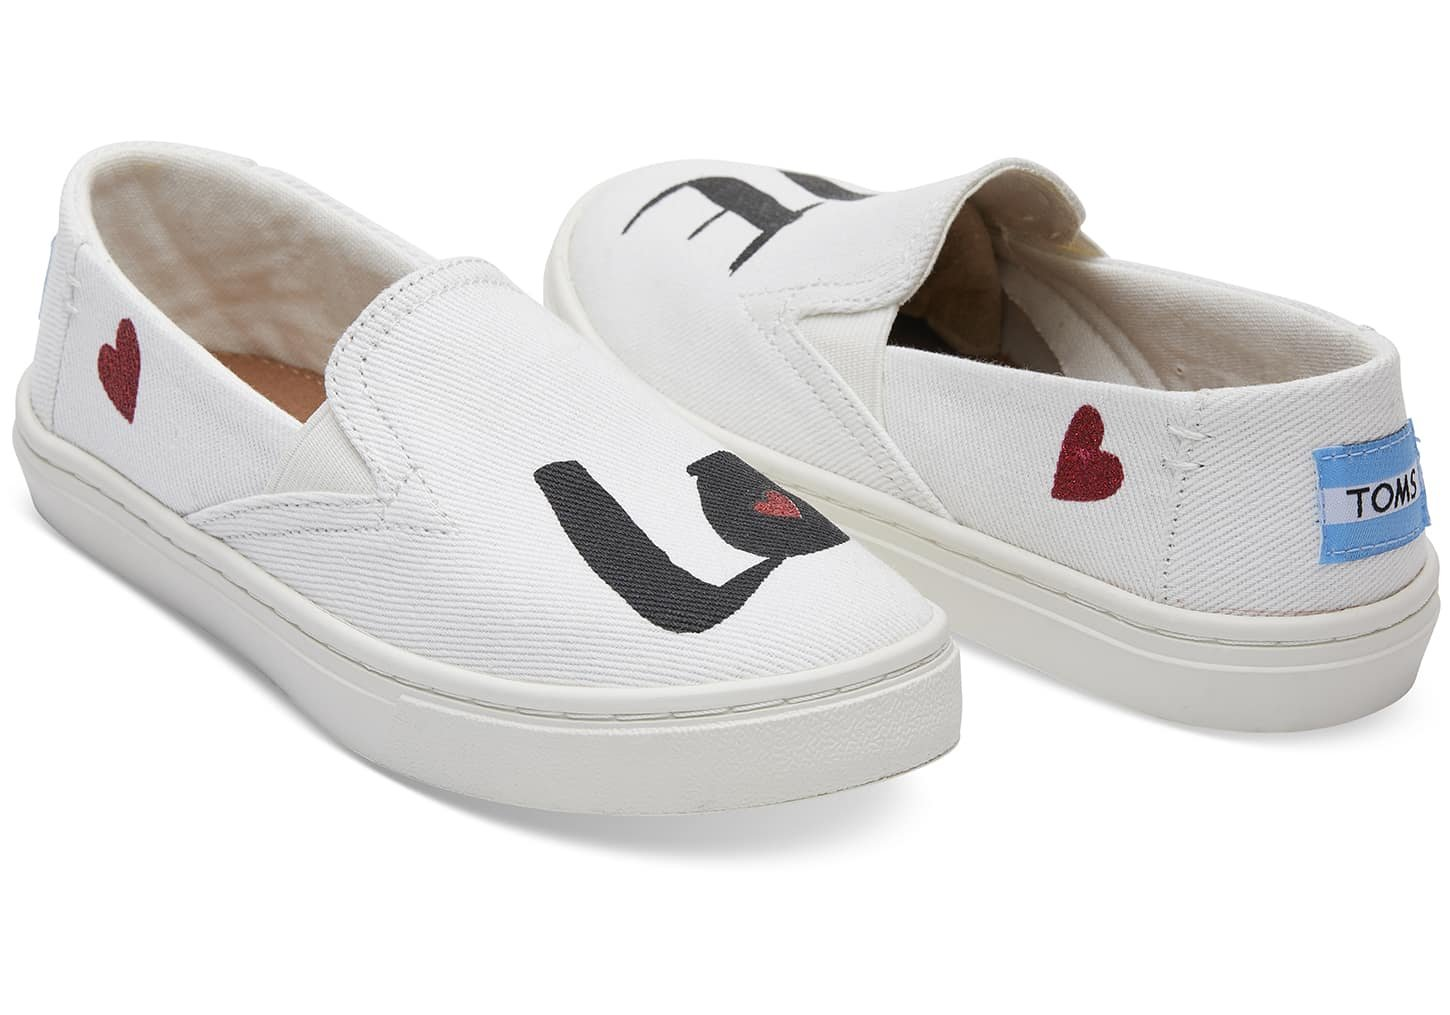 TOMS Youth Luca Slip Ons White Denim Love 10011482 Youth Size 5.5 by TOMS Kids (Image #2)